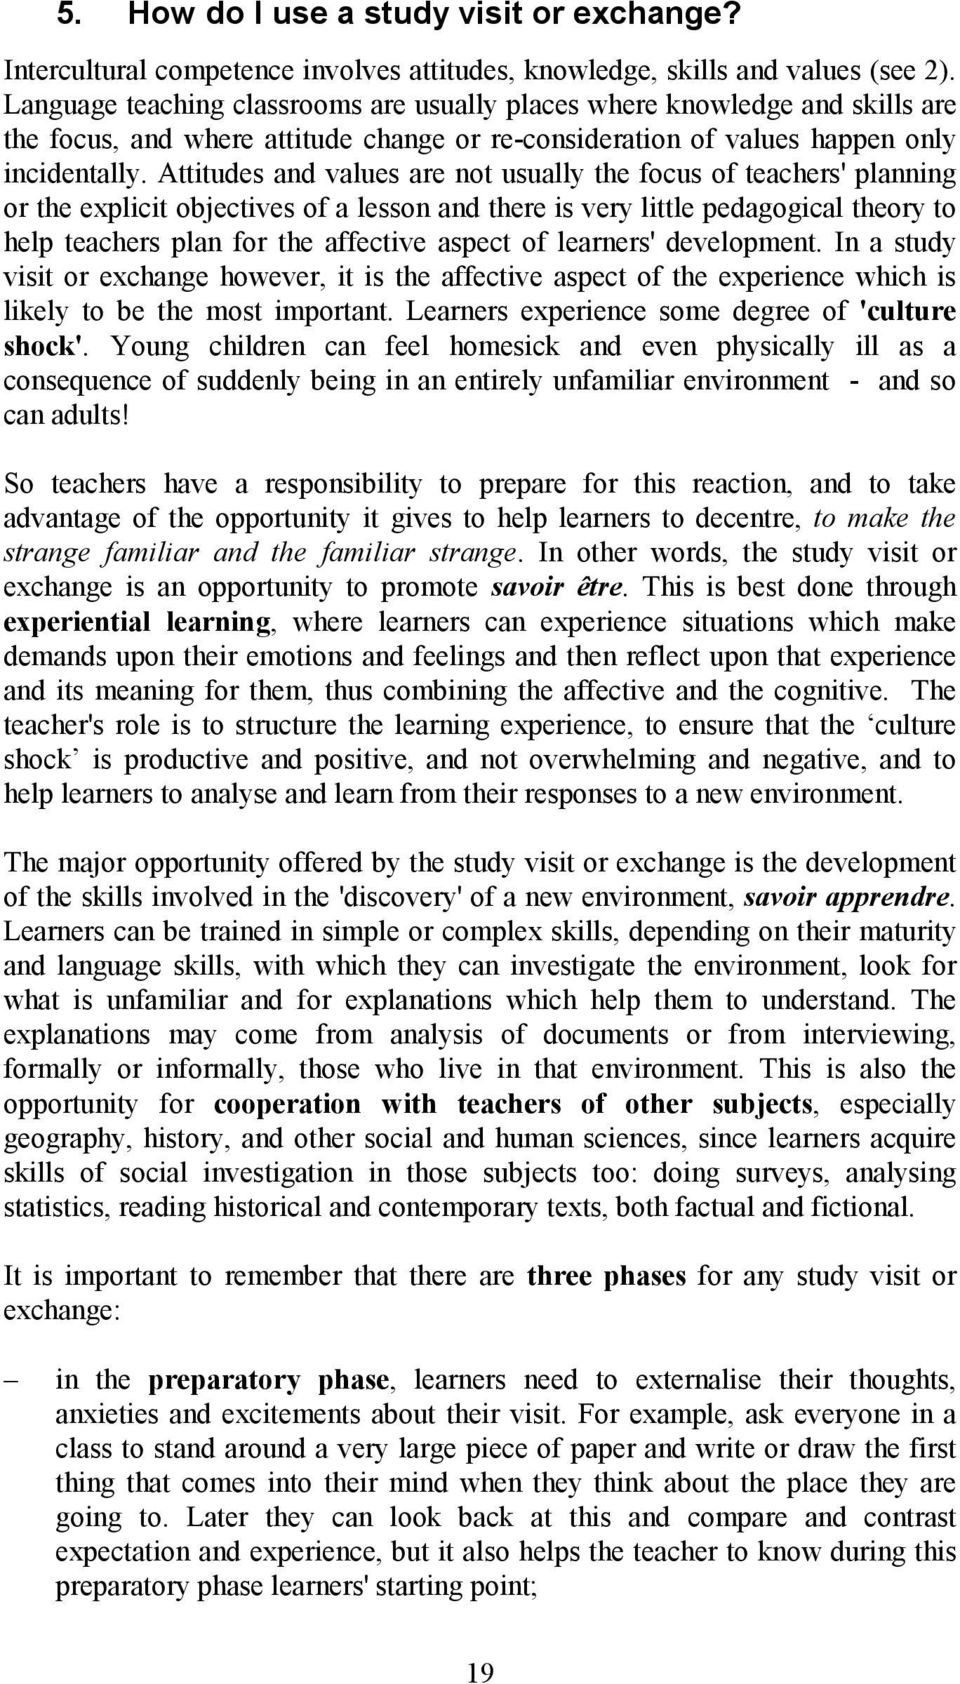 Attitudes and values are not usually the focus of teachers' planning or the explicit objectives of a lesson and there is very little pedagogical theory to help teachers plan for the affective aspect